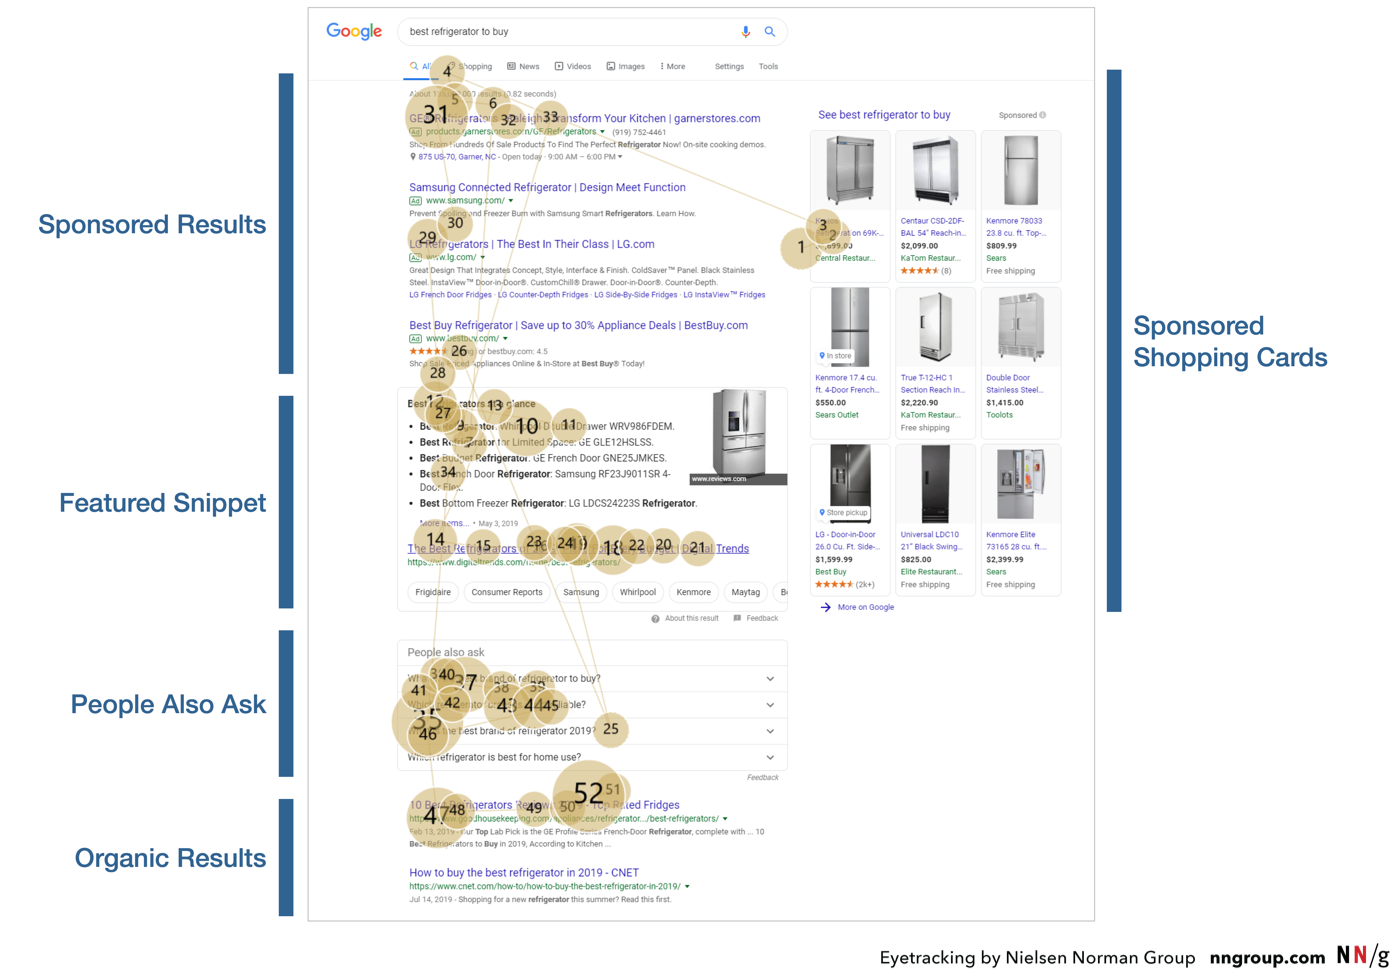 searcher's attention shifts on SERP